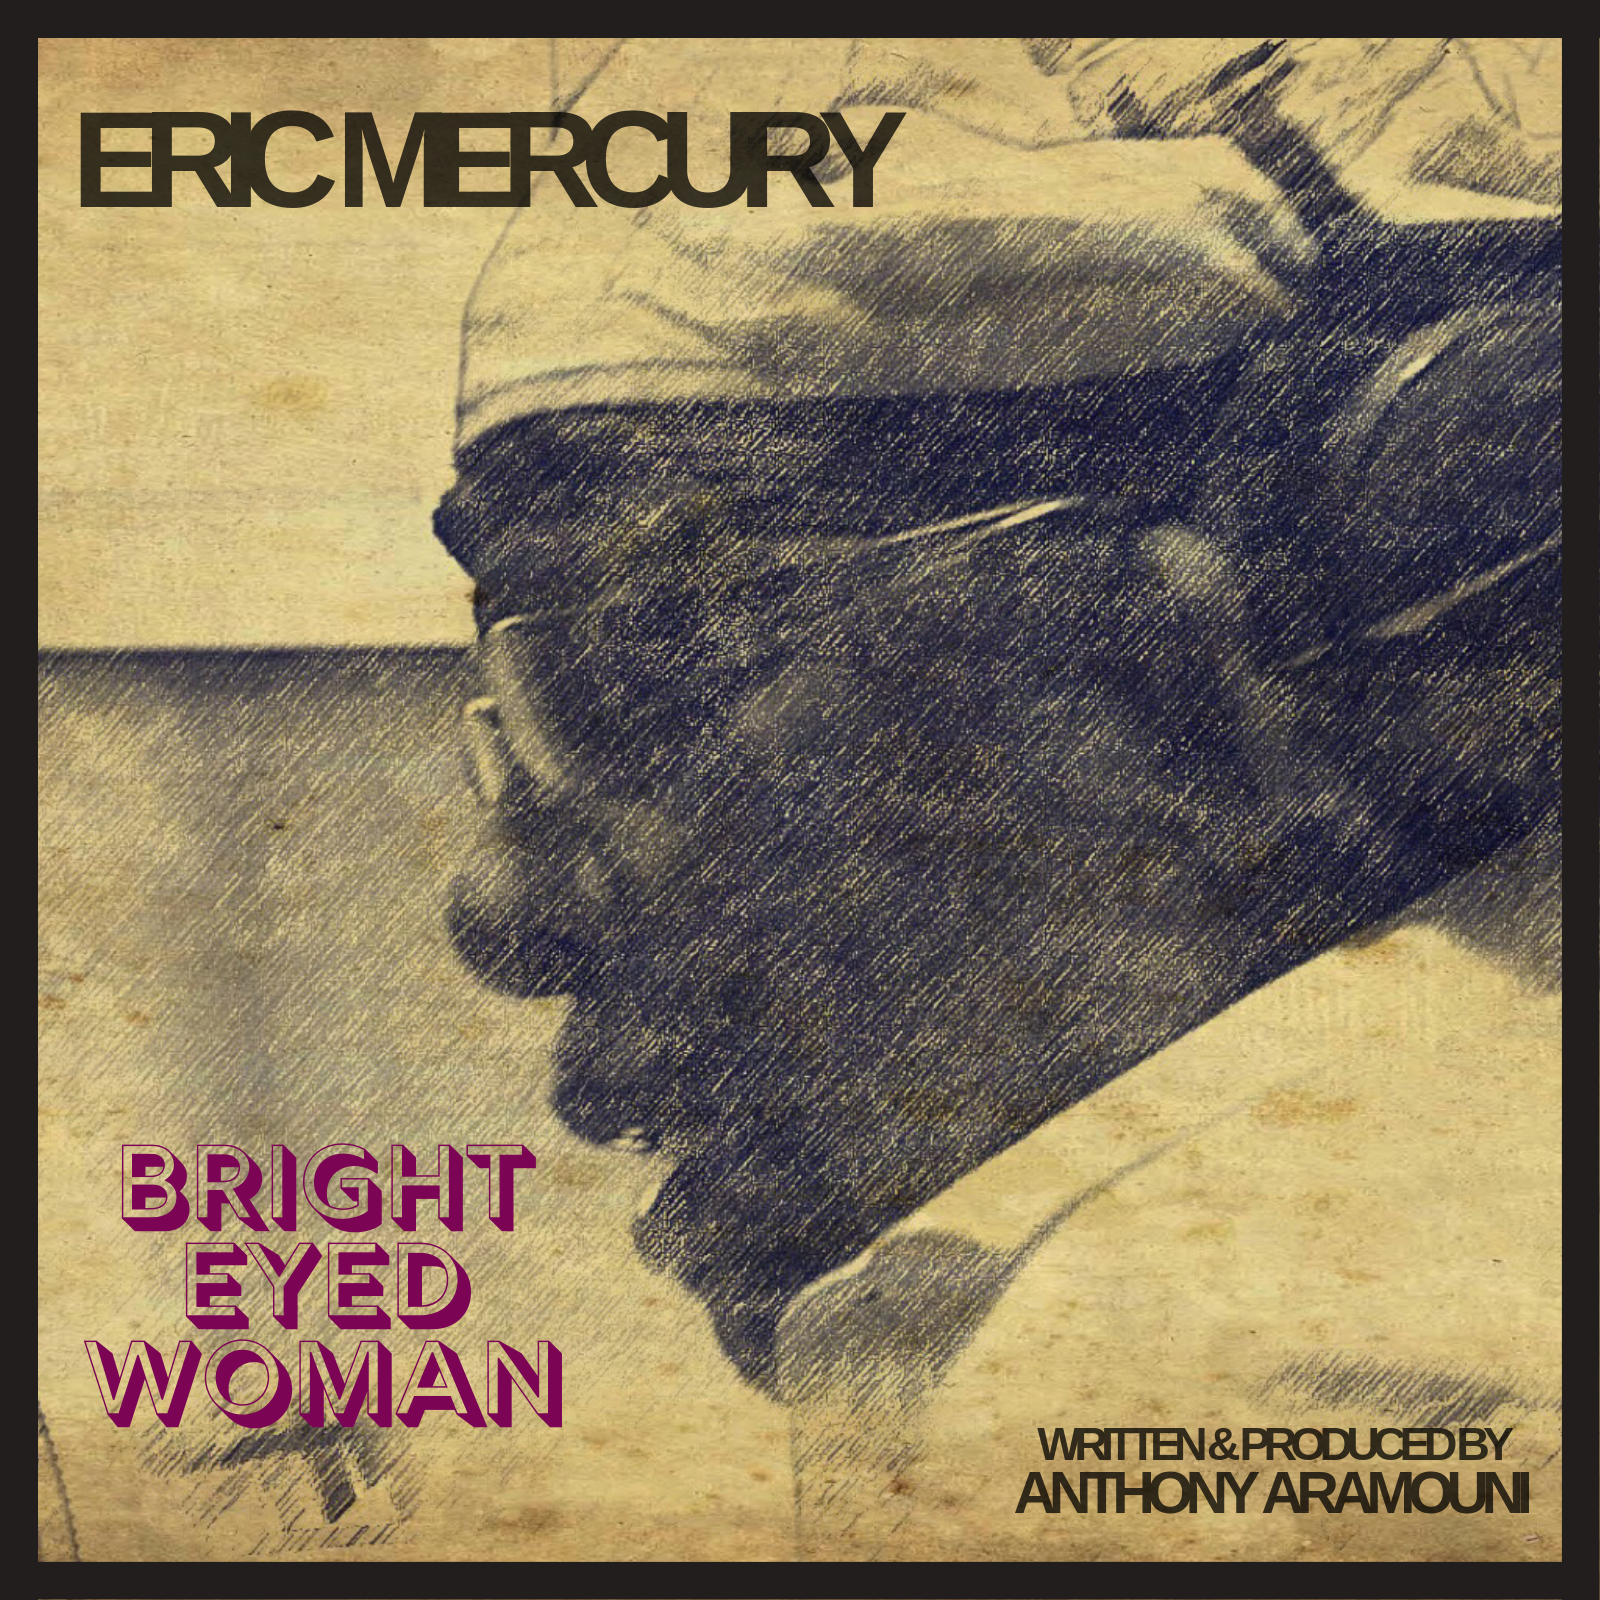 Bright Eyed Woman - Cover Art